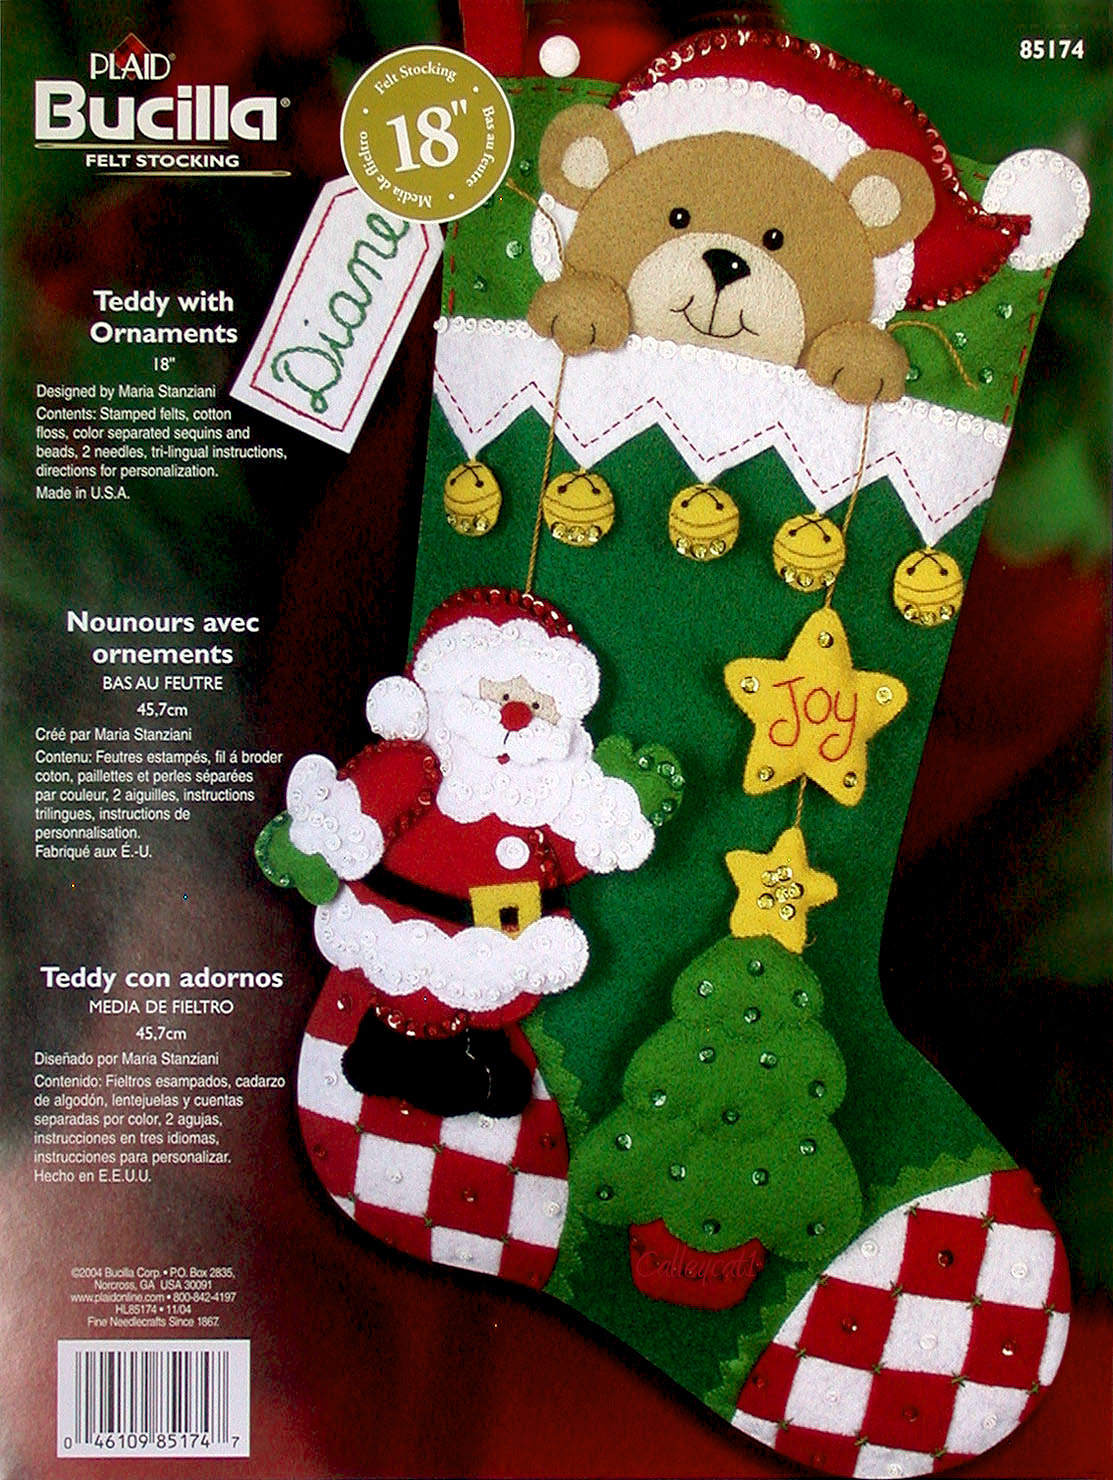 Christmas felt ornaments - Bucilla Teddy With Ornaments 18 Felt Christmas